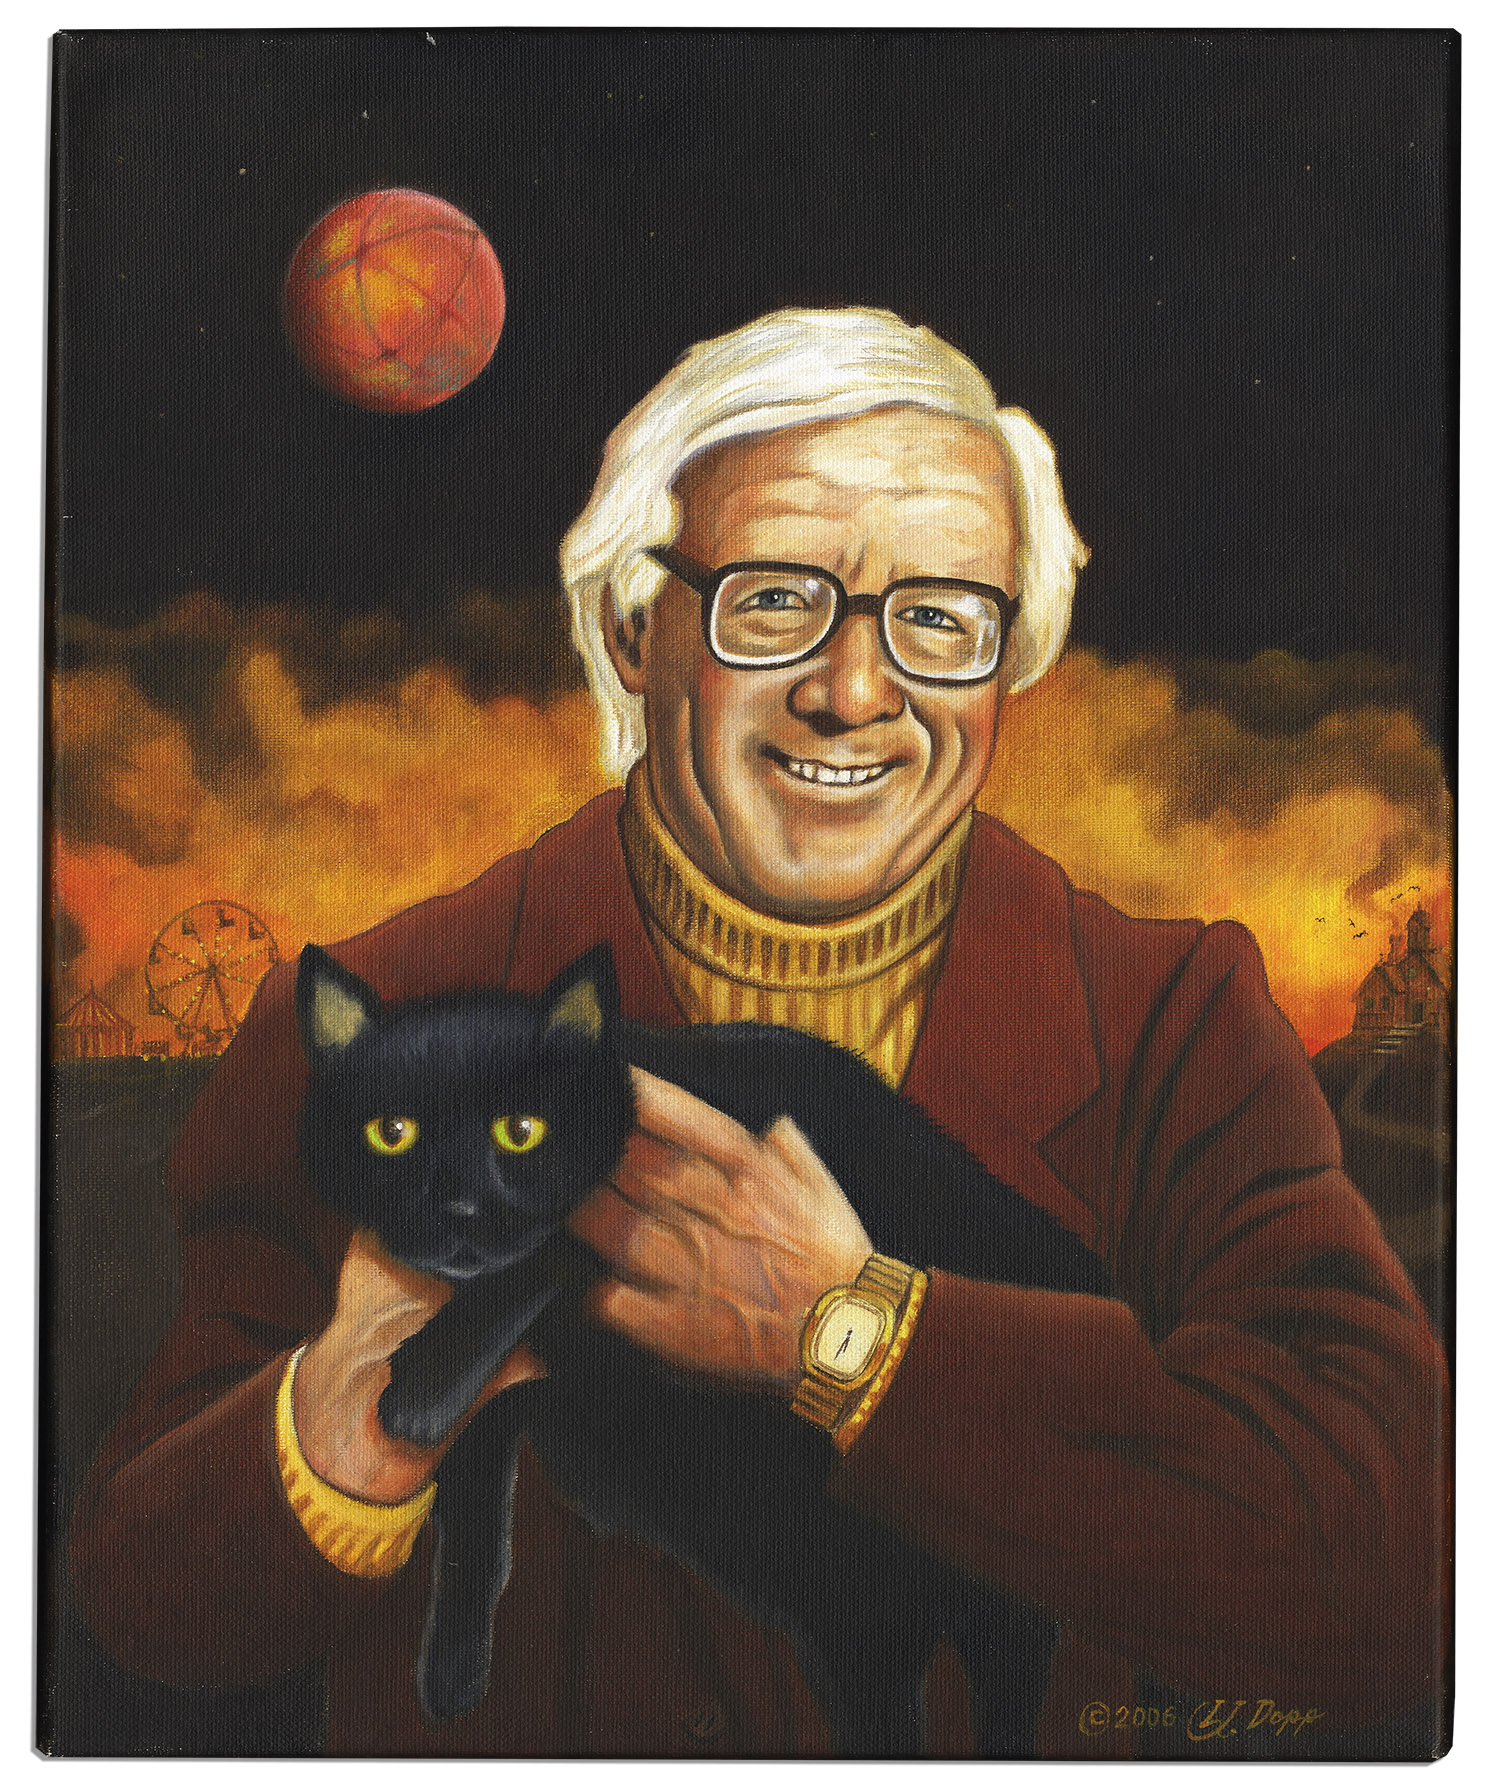 ray bradbury poemsray bradbury fahrenheit 451, ray bradbury books, ray bradbury dandelion wine, ray bradbury short stories, ray bradbury biography, ray bradbury informatie, ray bradbury casa, ray bradbury quotes, ray bradbury егэ, ray bradbury fahrenheit 451 read, ray bradbury read online, ray bradbury wikipedia, ray bradbury smile, ray bradbury a sound of thunder, ray bradbury the veldt, ray bradbury poems, ray bradbury all summer in a day, ray bradbury carti, ray bradbury книги, ray bradbury biografia